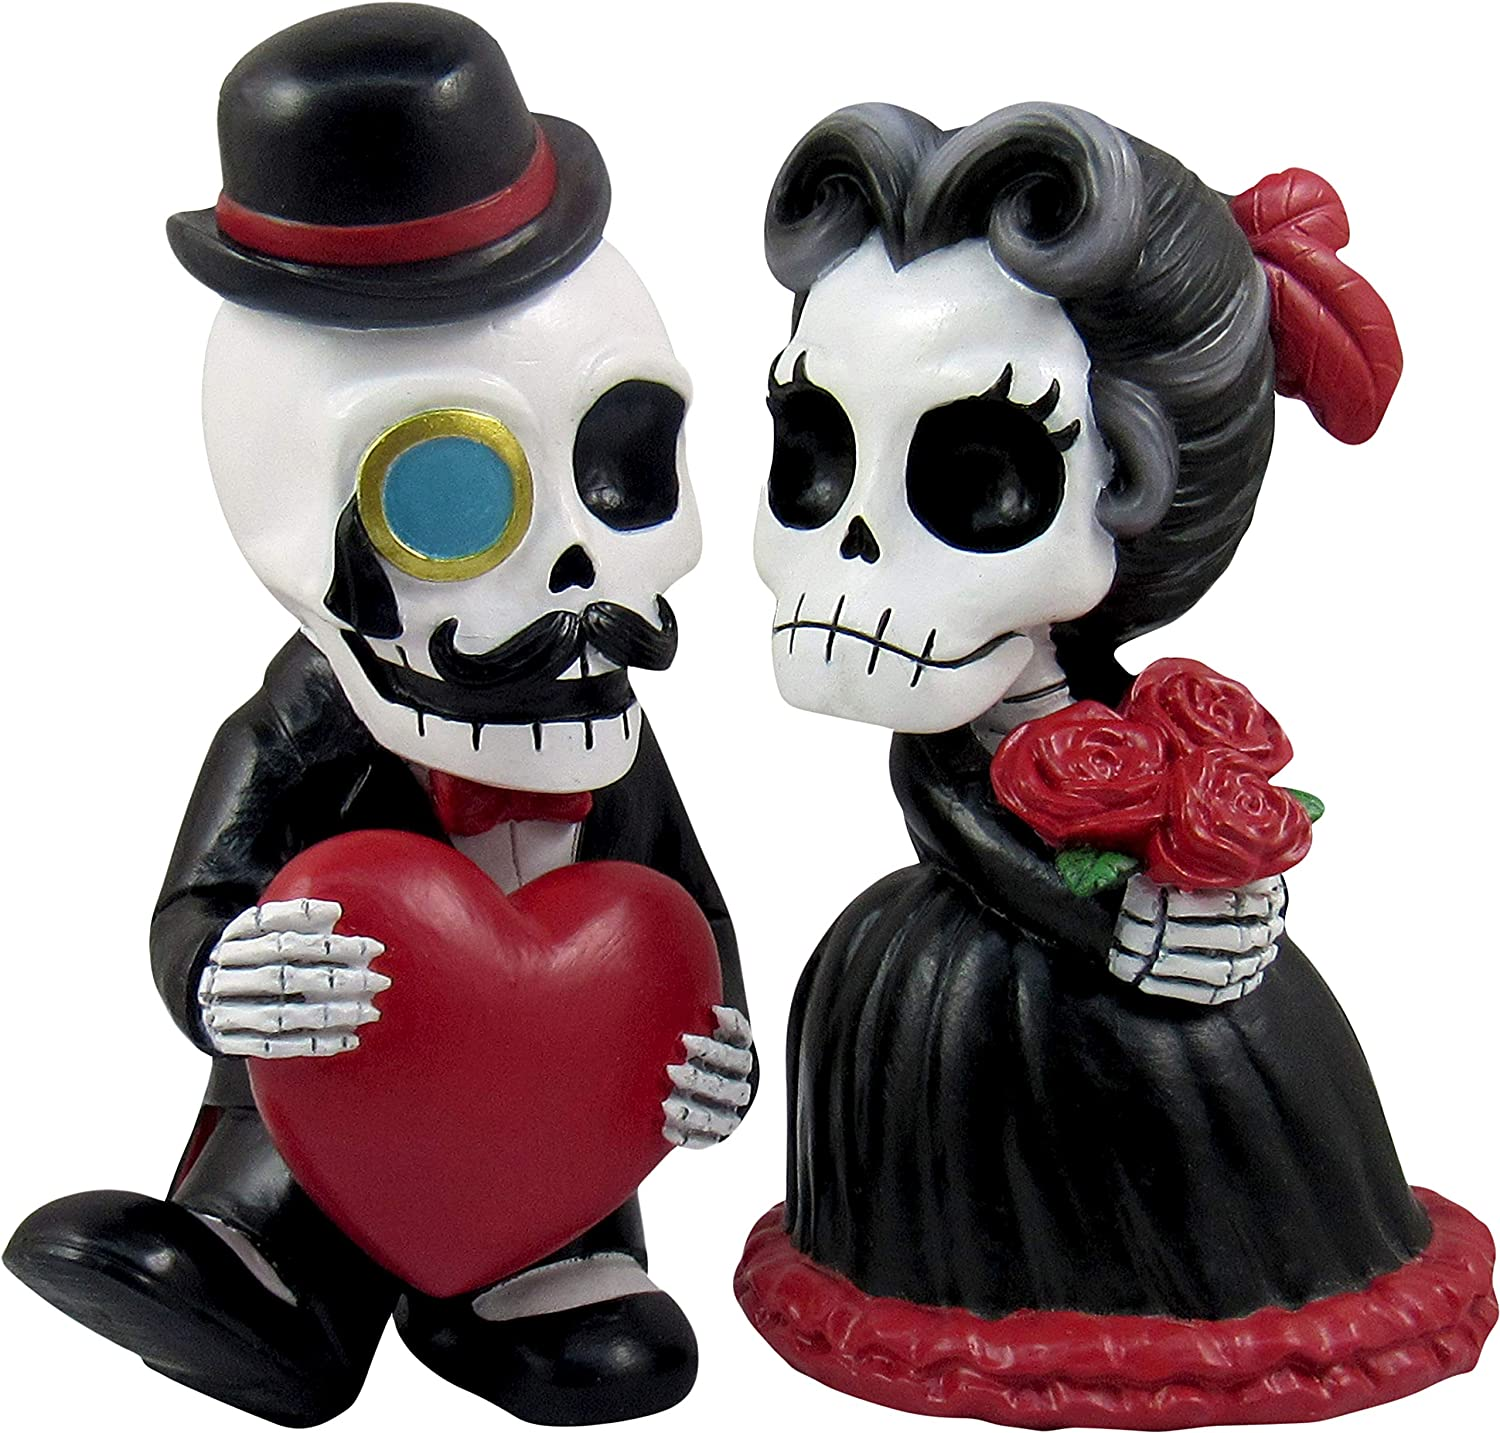 DWK - Sir Coffinswood & Lady Casket - Adorable Hand-Painted Skeleton Couple Collectible 2-Piece Figurine Set Victorian Gothic Lovers Halloween Decorations Romantic Gift Home Decor Accent, 5.5-inch